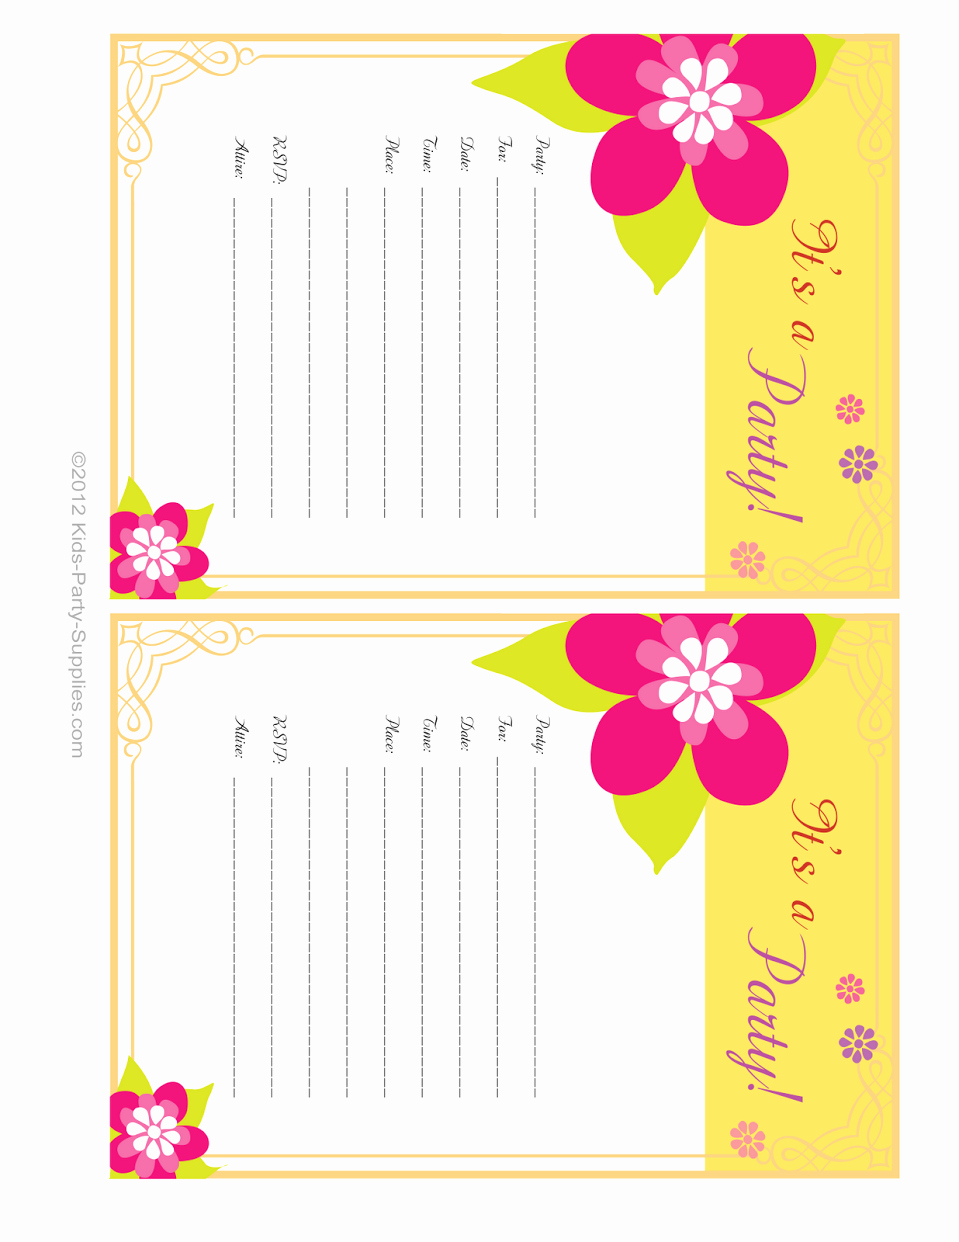 Luau Party Invitations Templates Free Best Of Hawaiian Party Invitations Free Printable